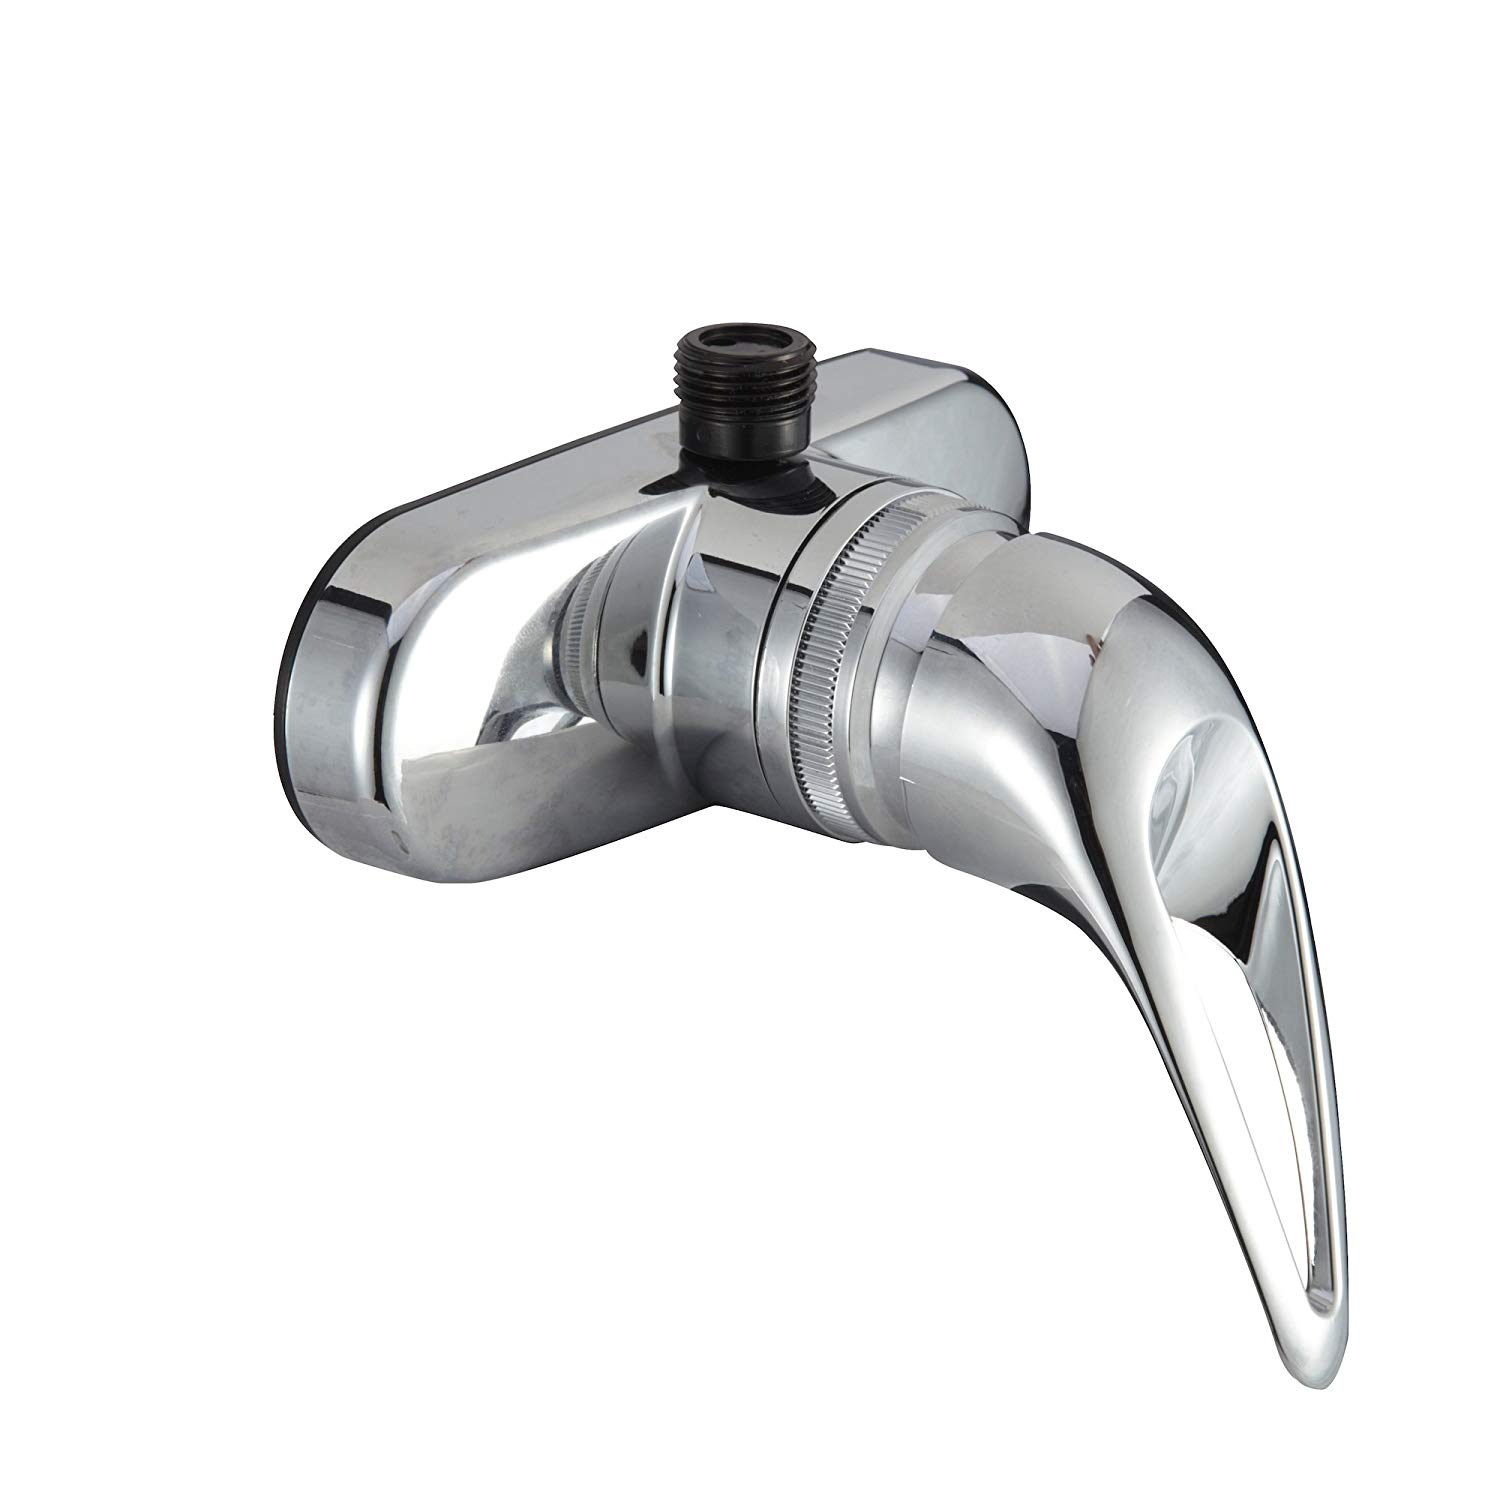 Dura Faucet Single Lever RV Shower Faucet - Chrome Polished